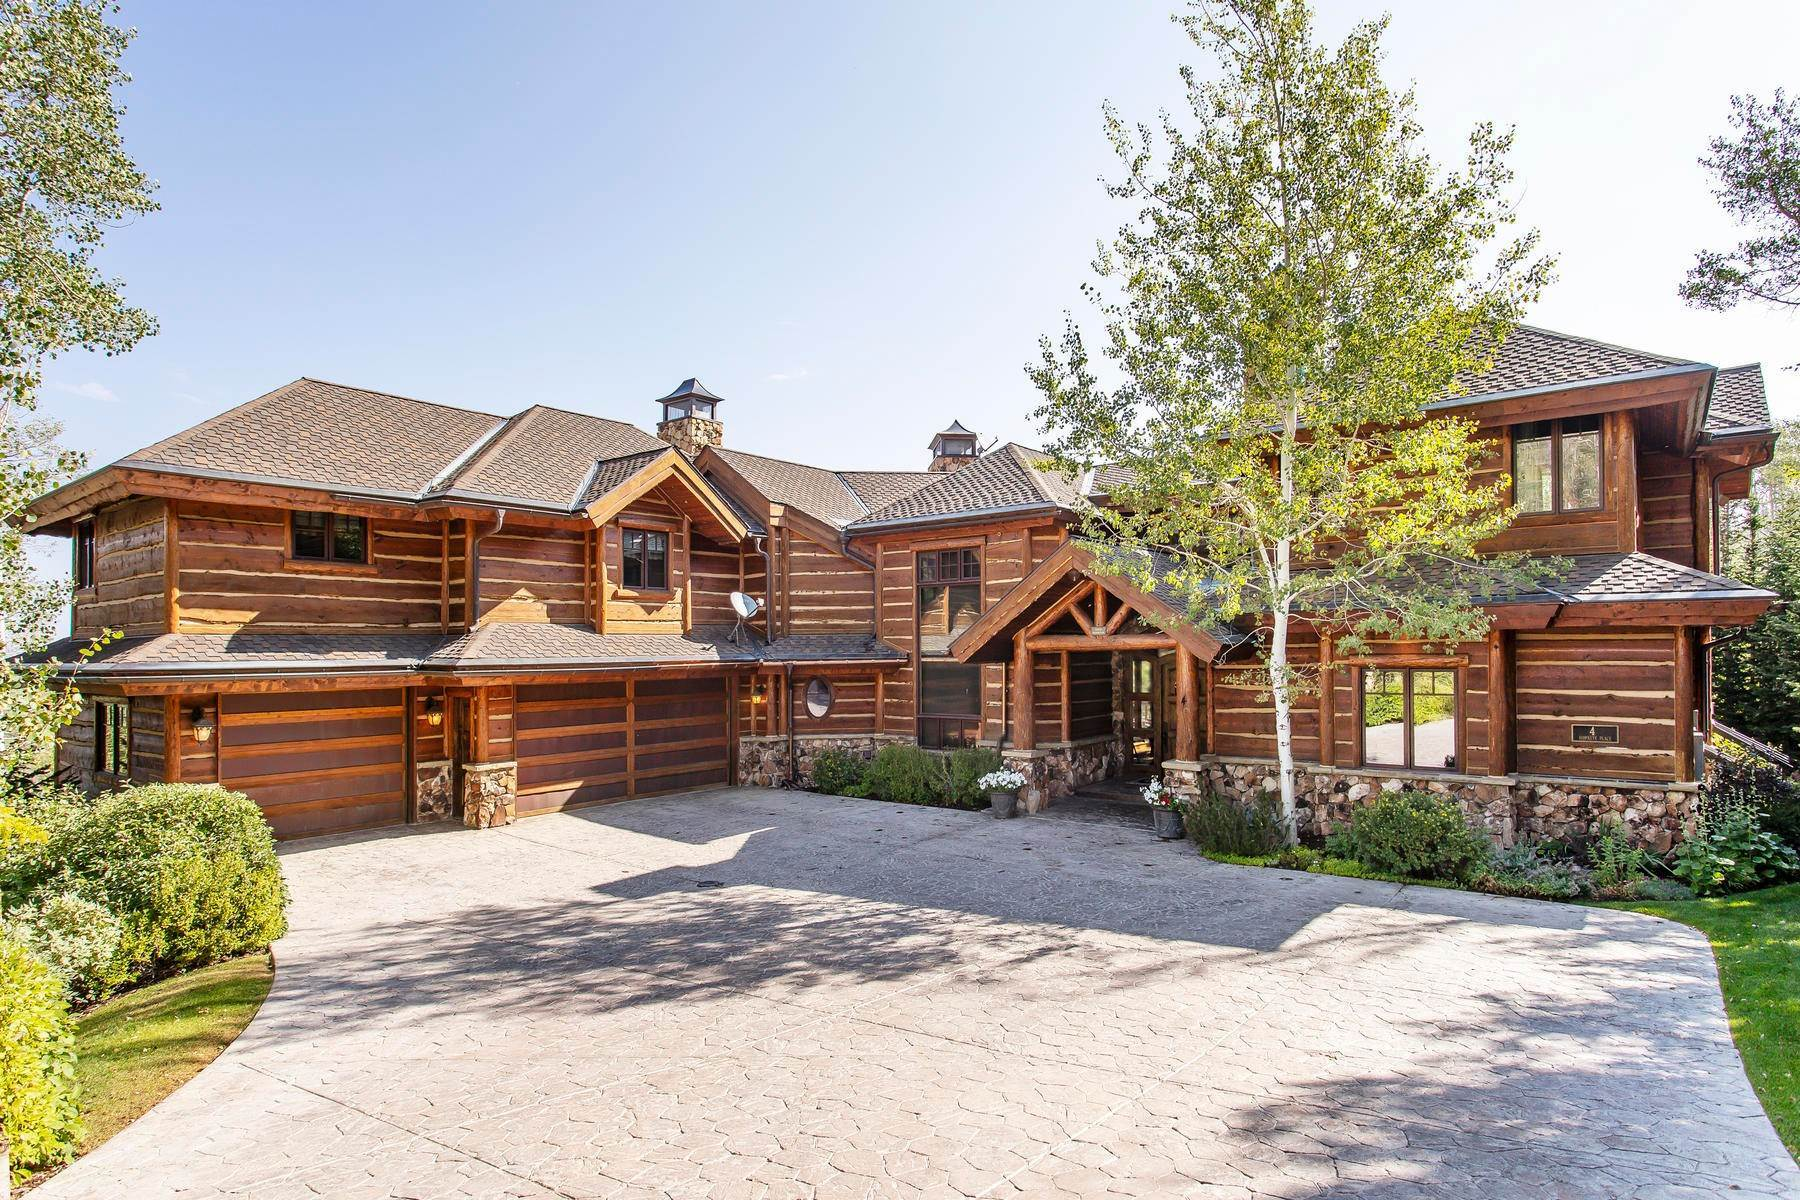 Single Family Homes for Sale at Premier Location In Northside Village 4 Hawkeye Place Park City, Utah 84060 United States